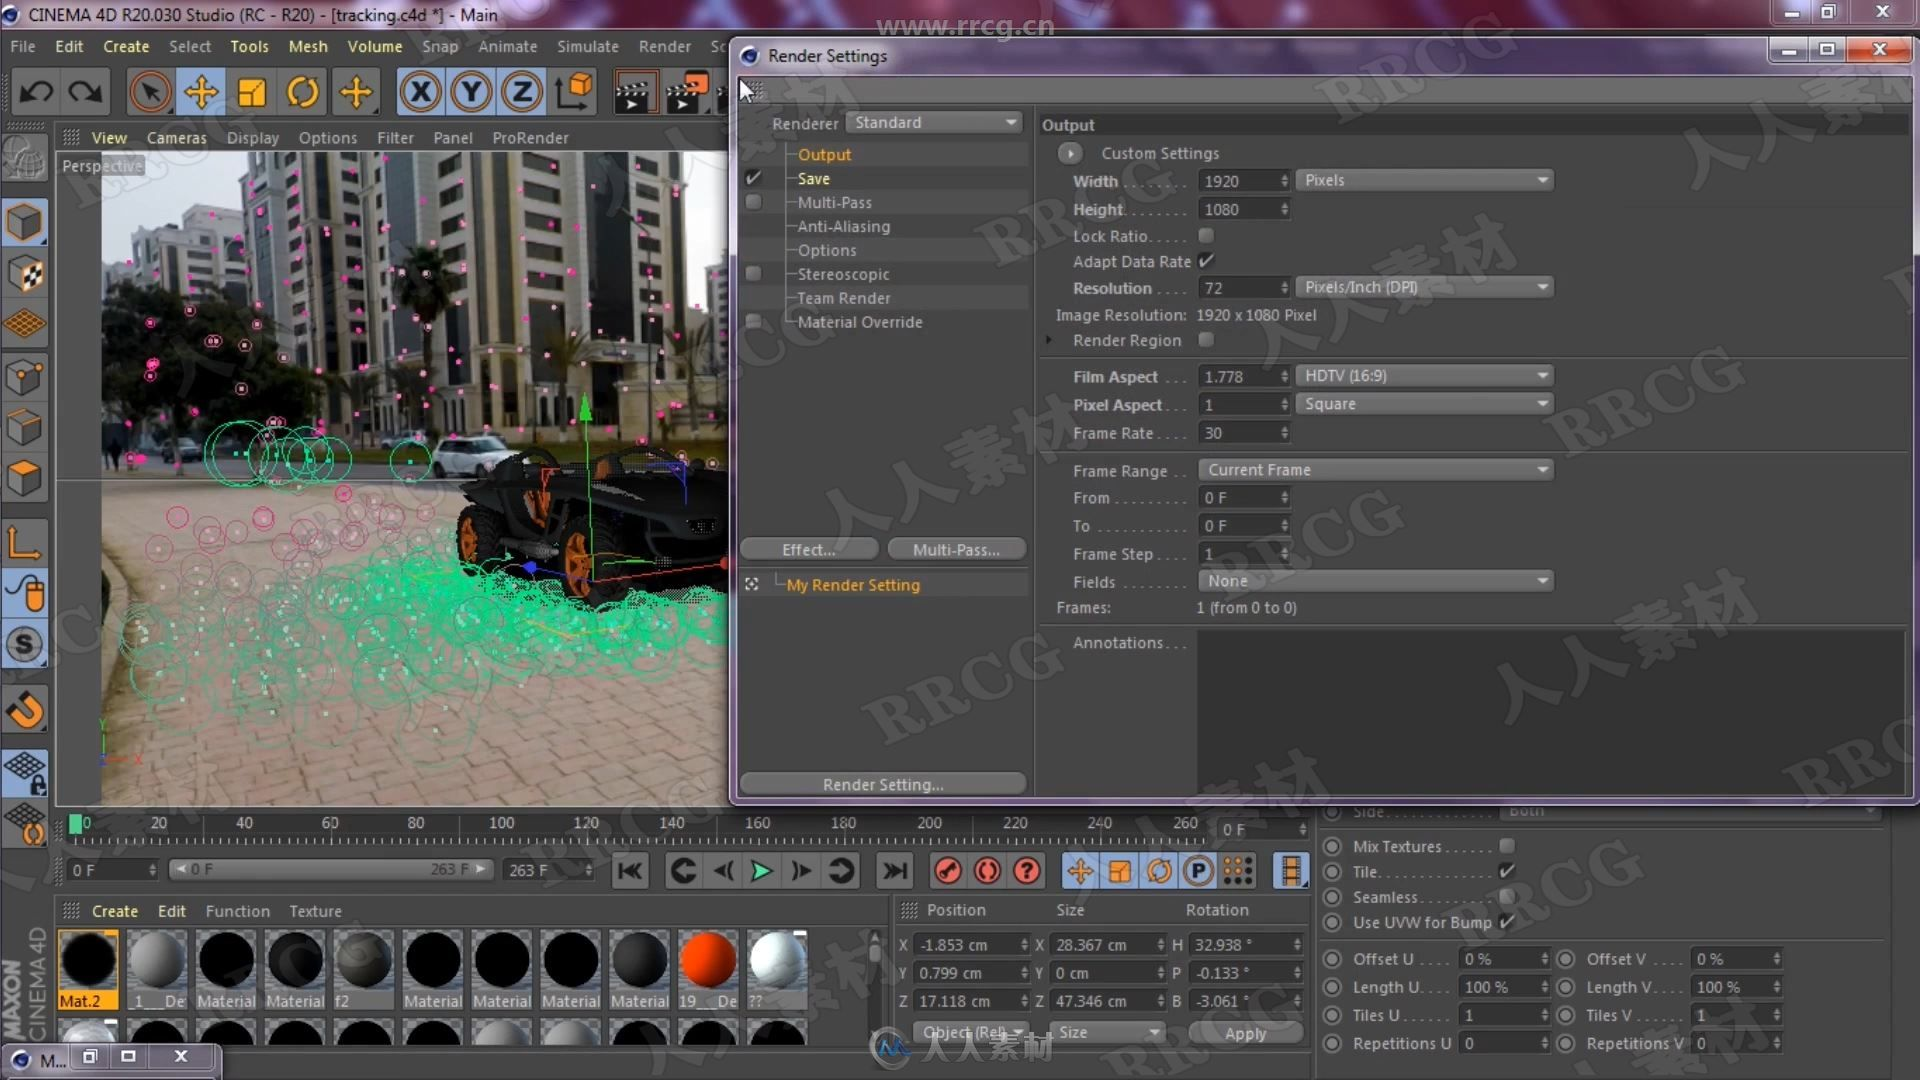 387450-4 - Importing your 3D Models - Motion Tracking in Cinema 4D (R20 R21) Bri.jpg